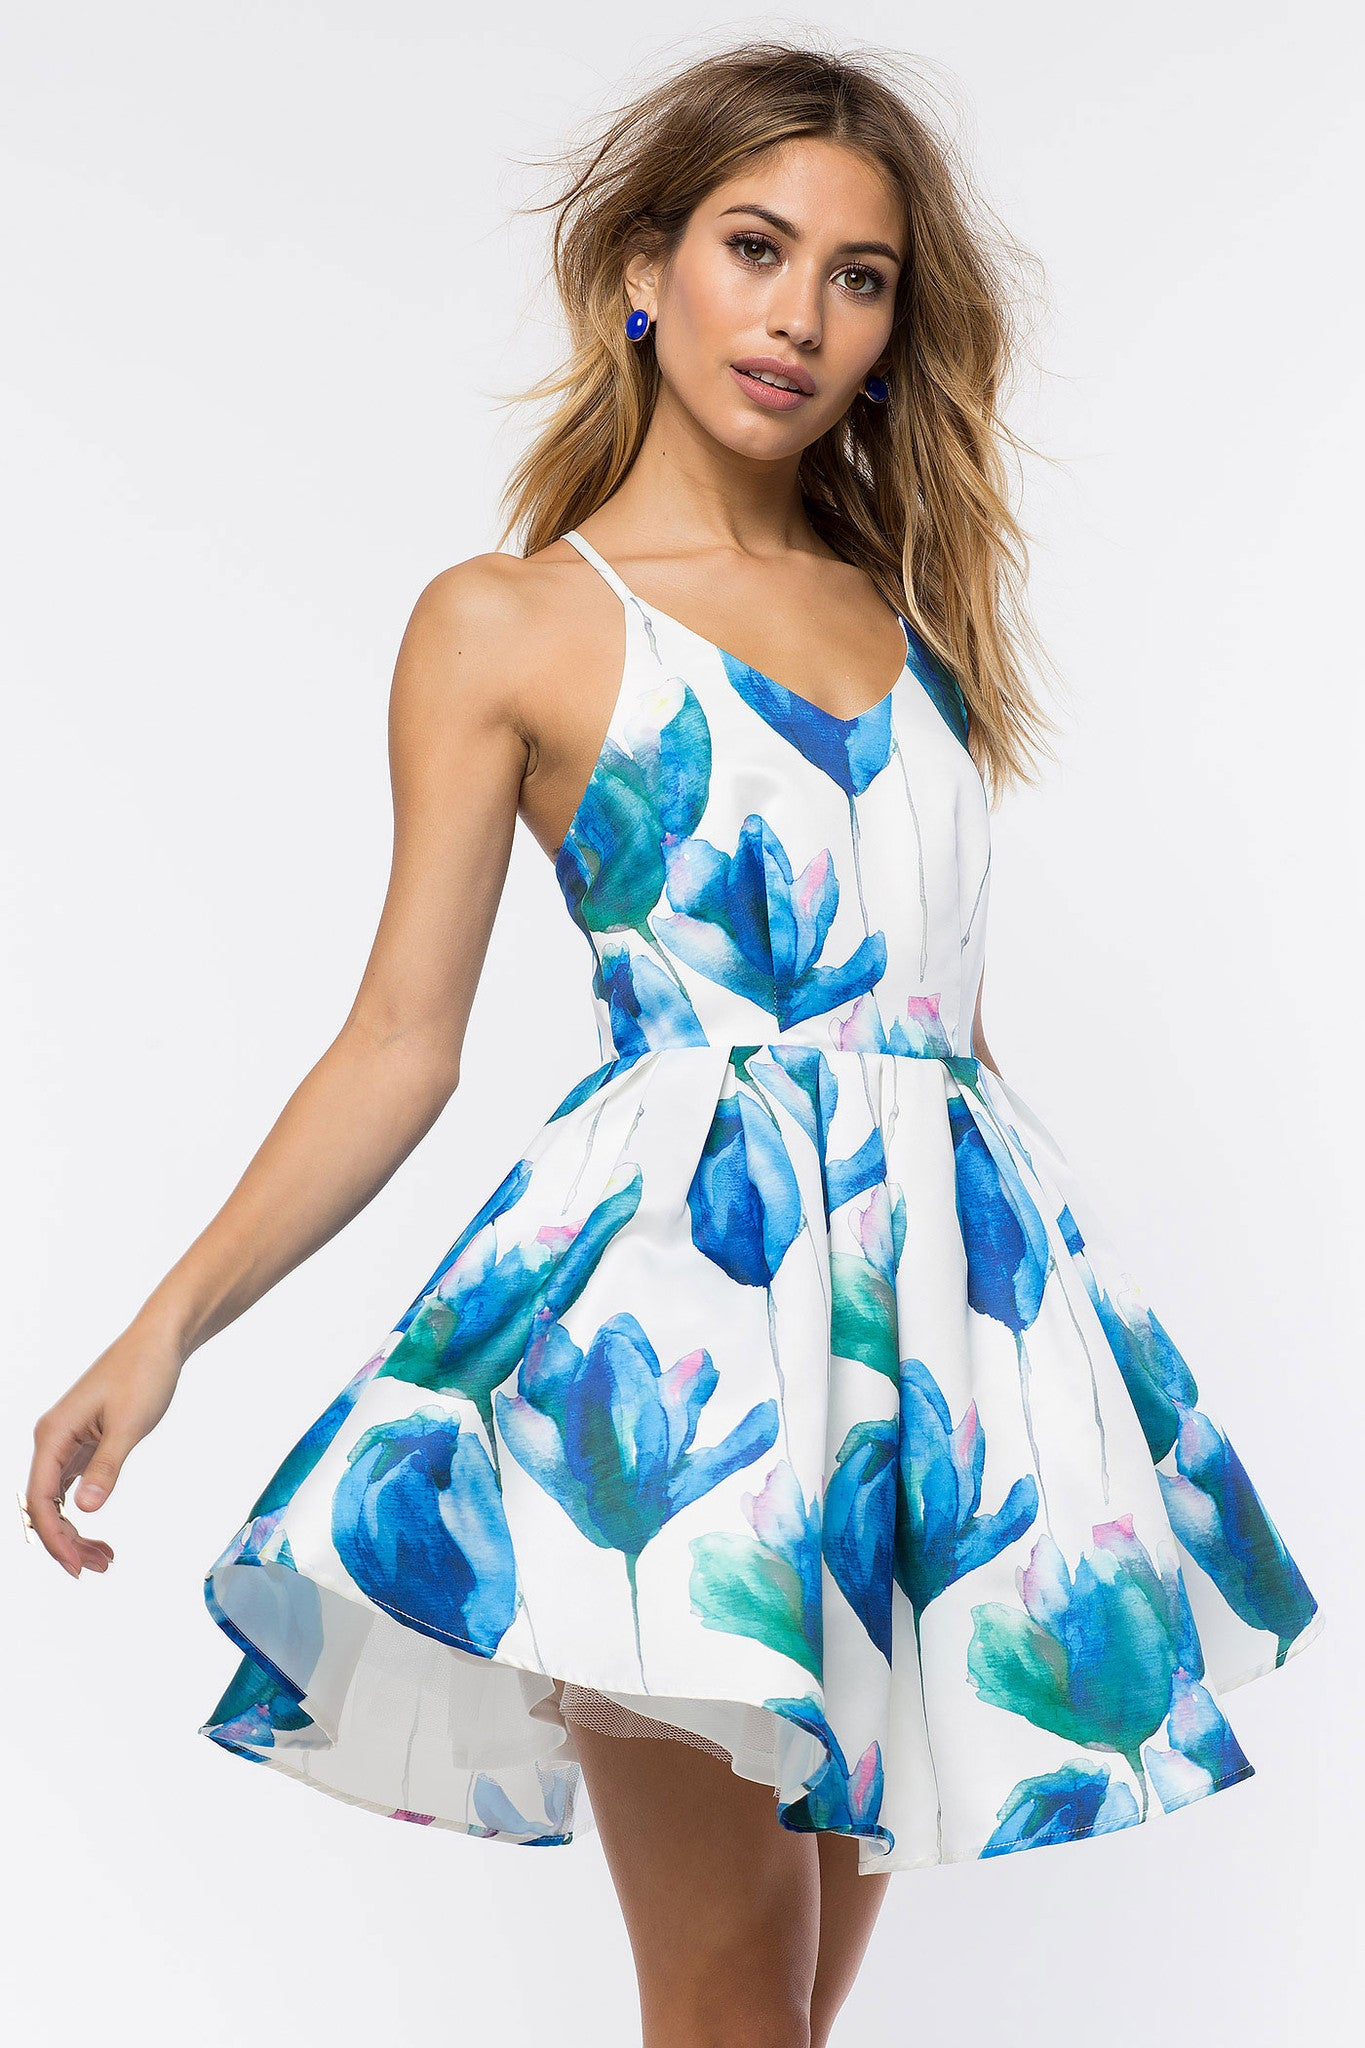 Fine Party Dress Asos Pictures Inspiration - Wedding Ideas ...